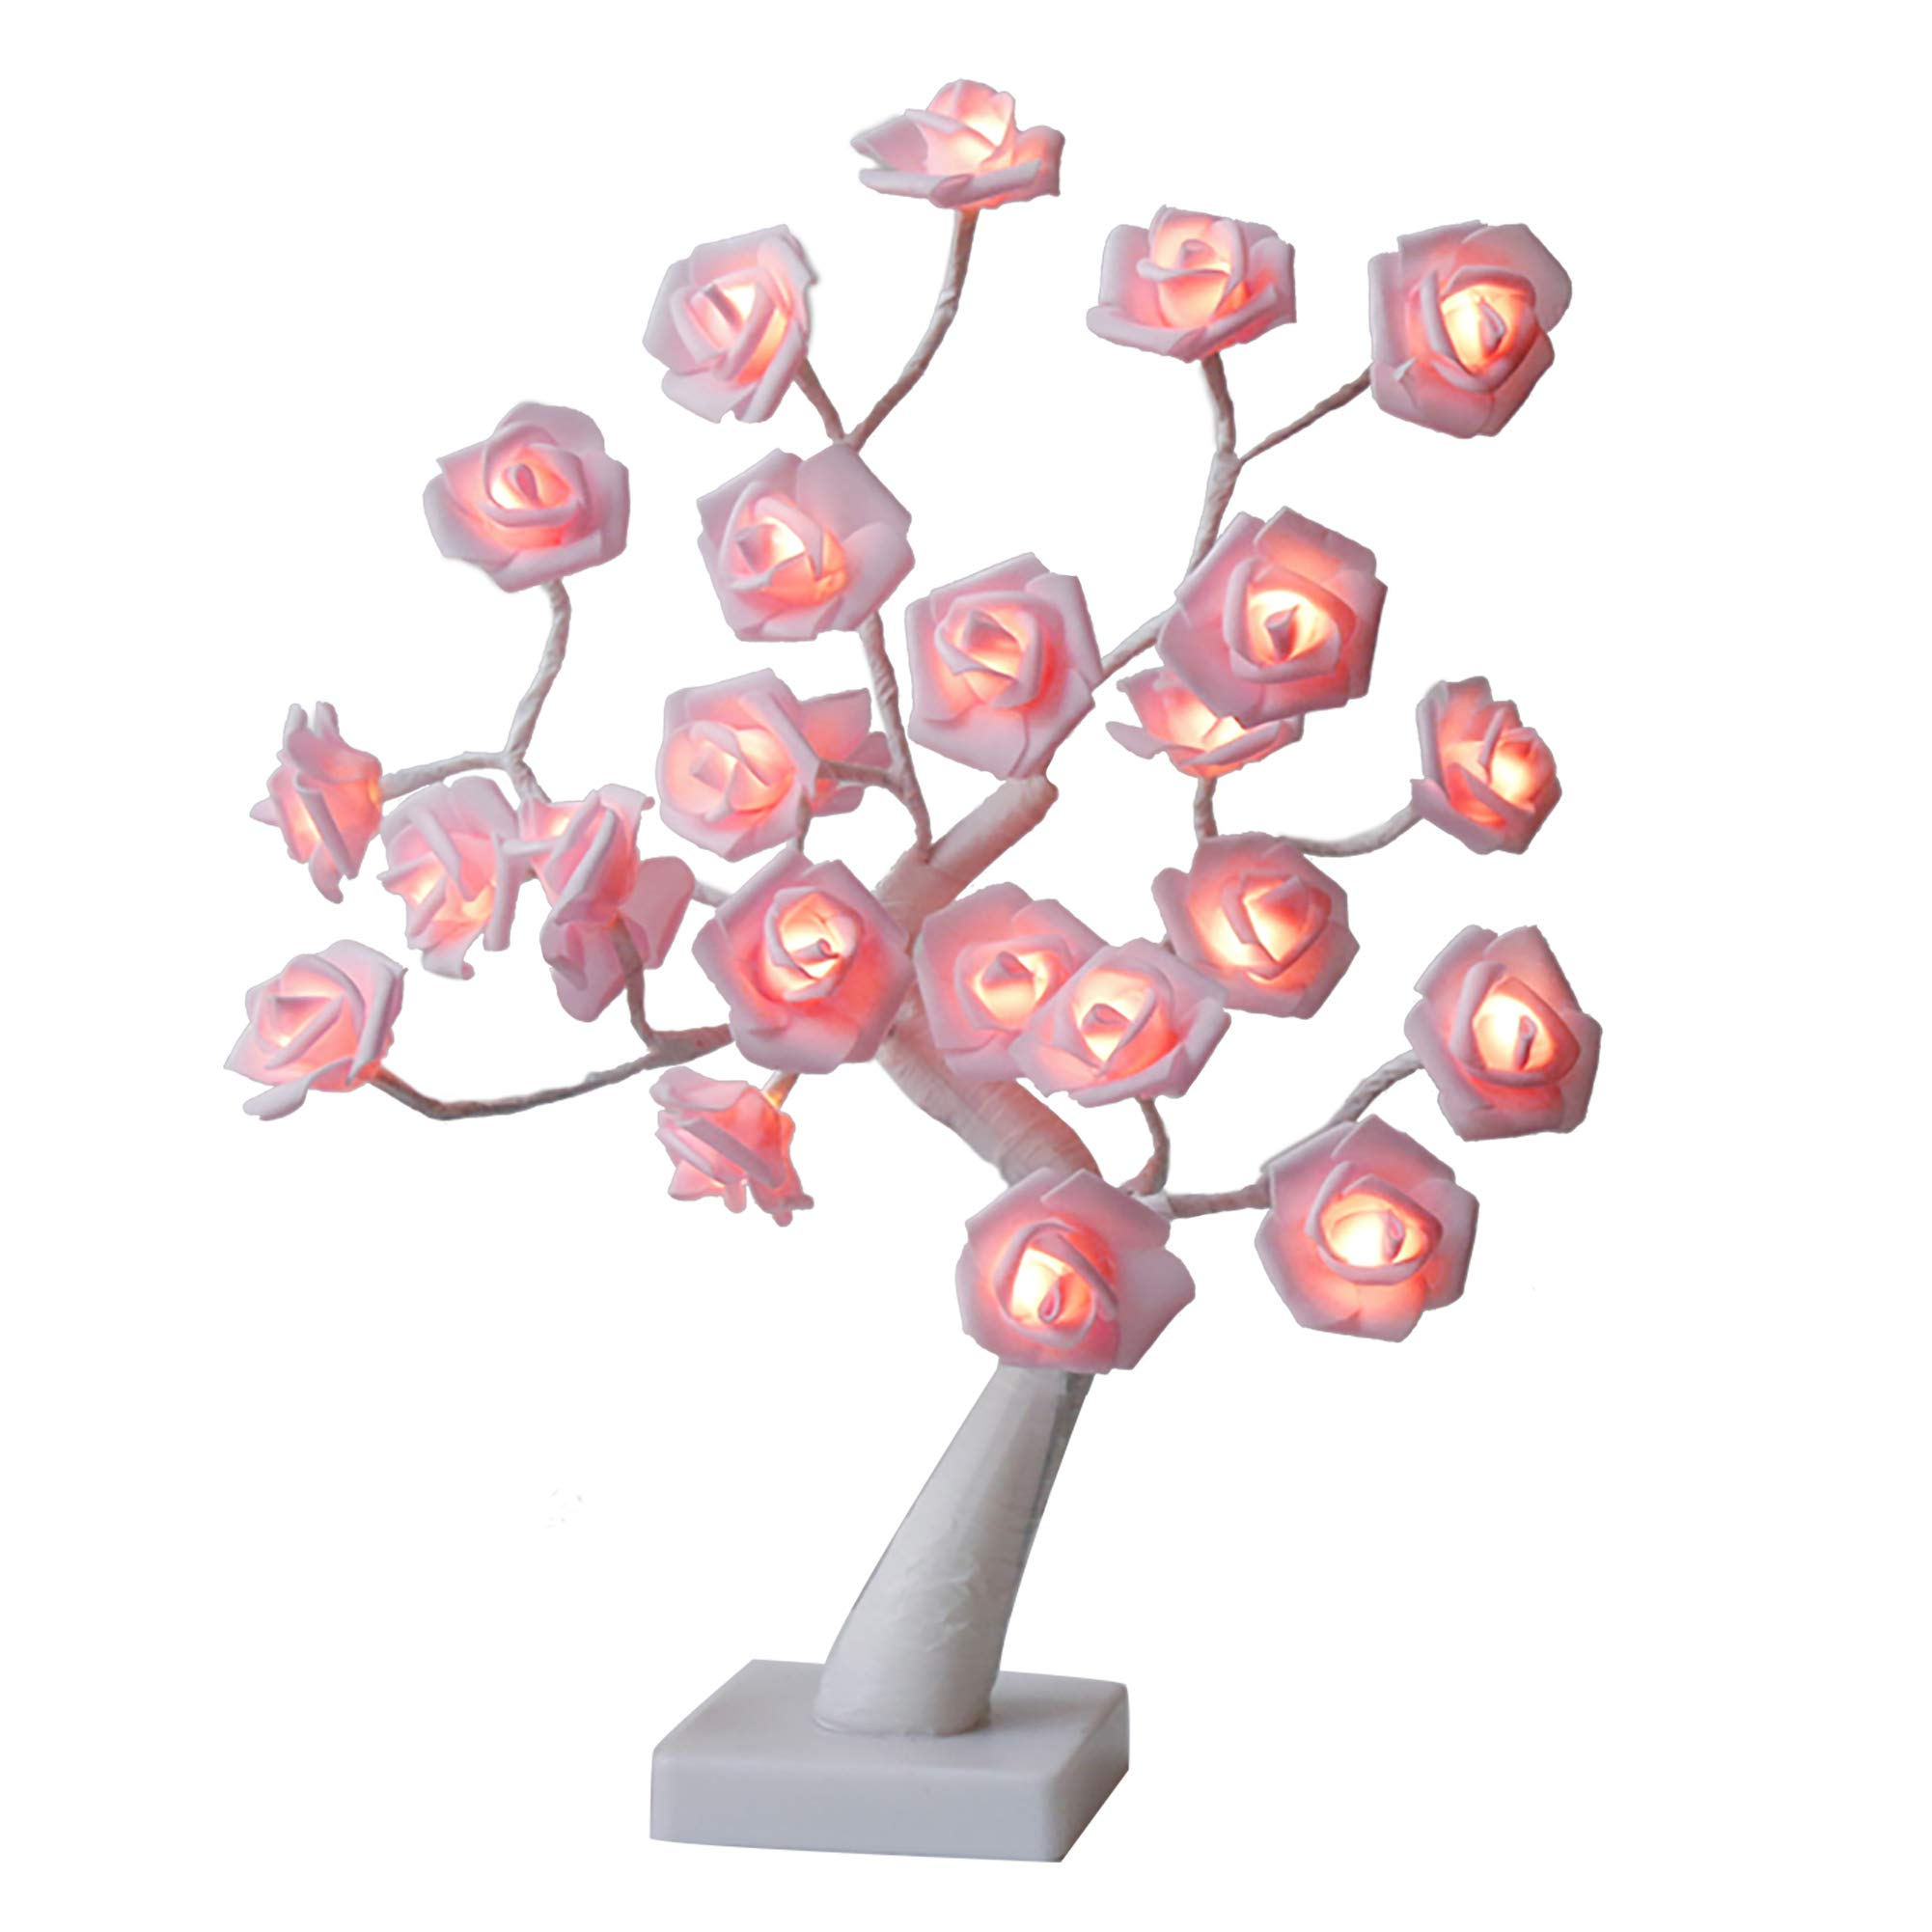 EAMBRITE 18'' Led Rose Flower Table Tree with 24 Warm White LED Lights for Valentine's Wedding Living Room Bedroom Party Women Girls Table Lamp